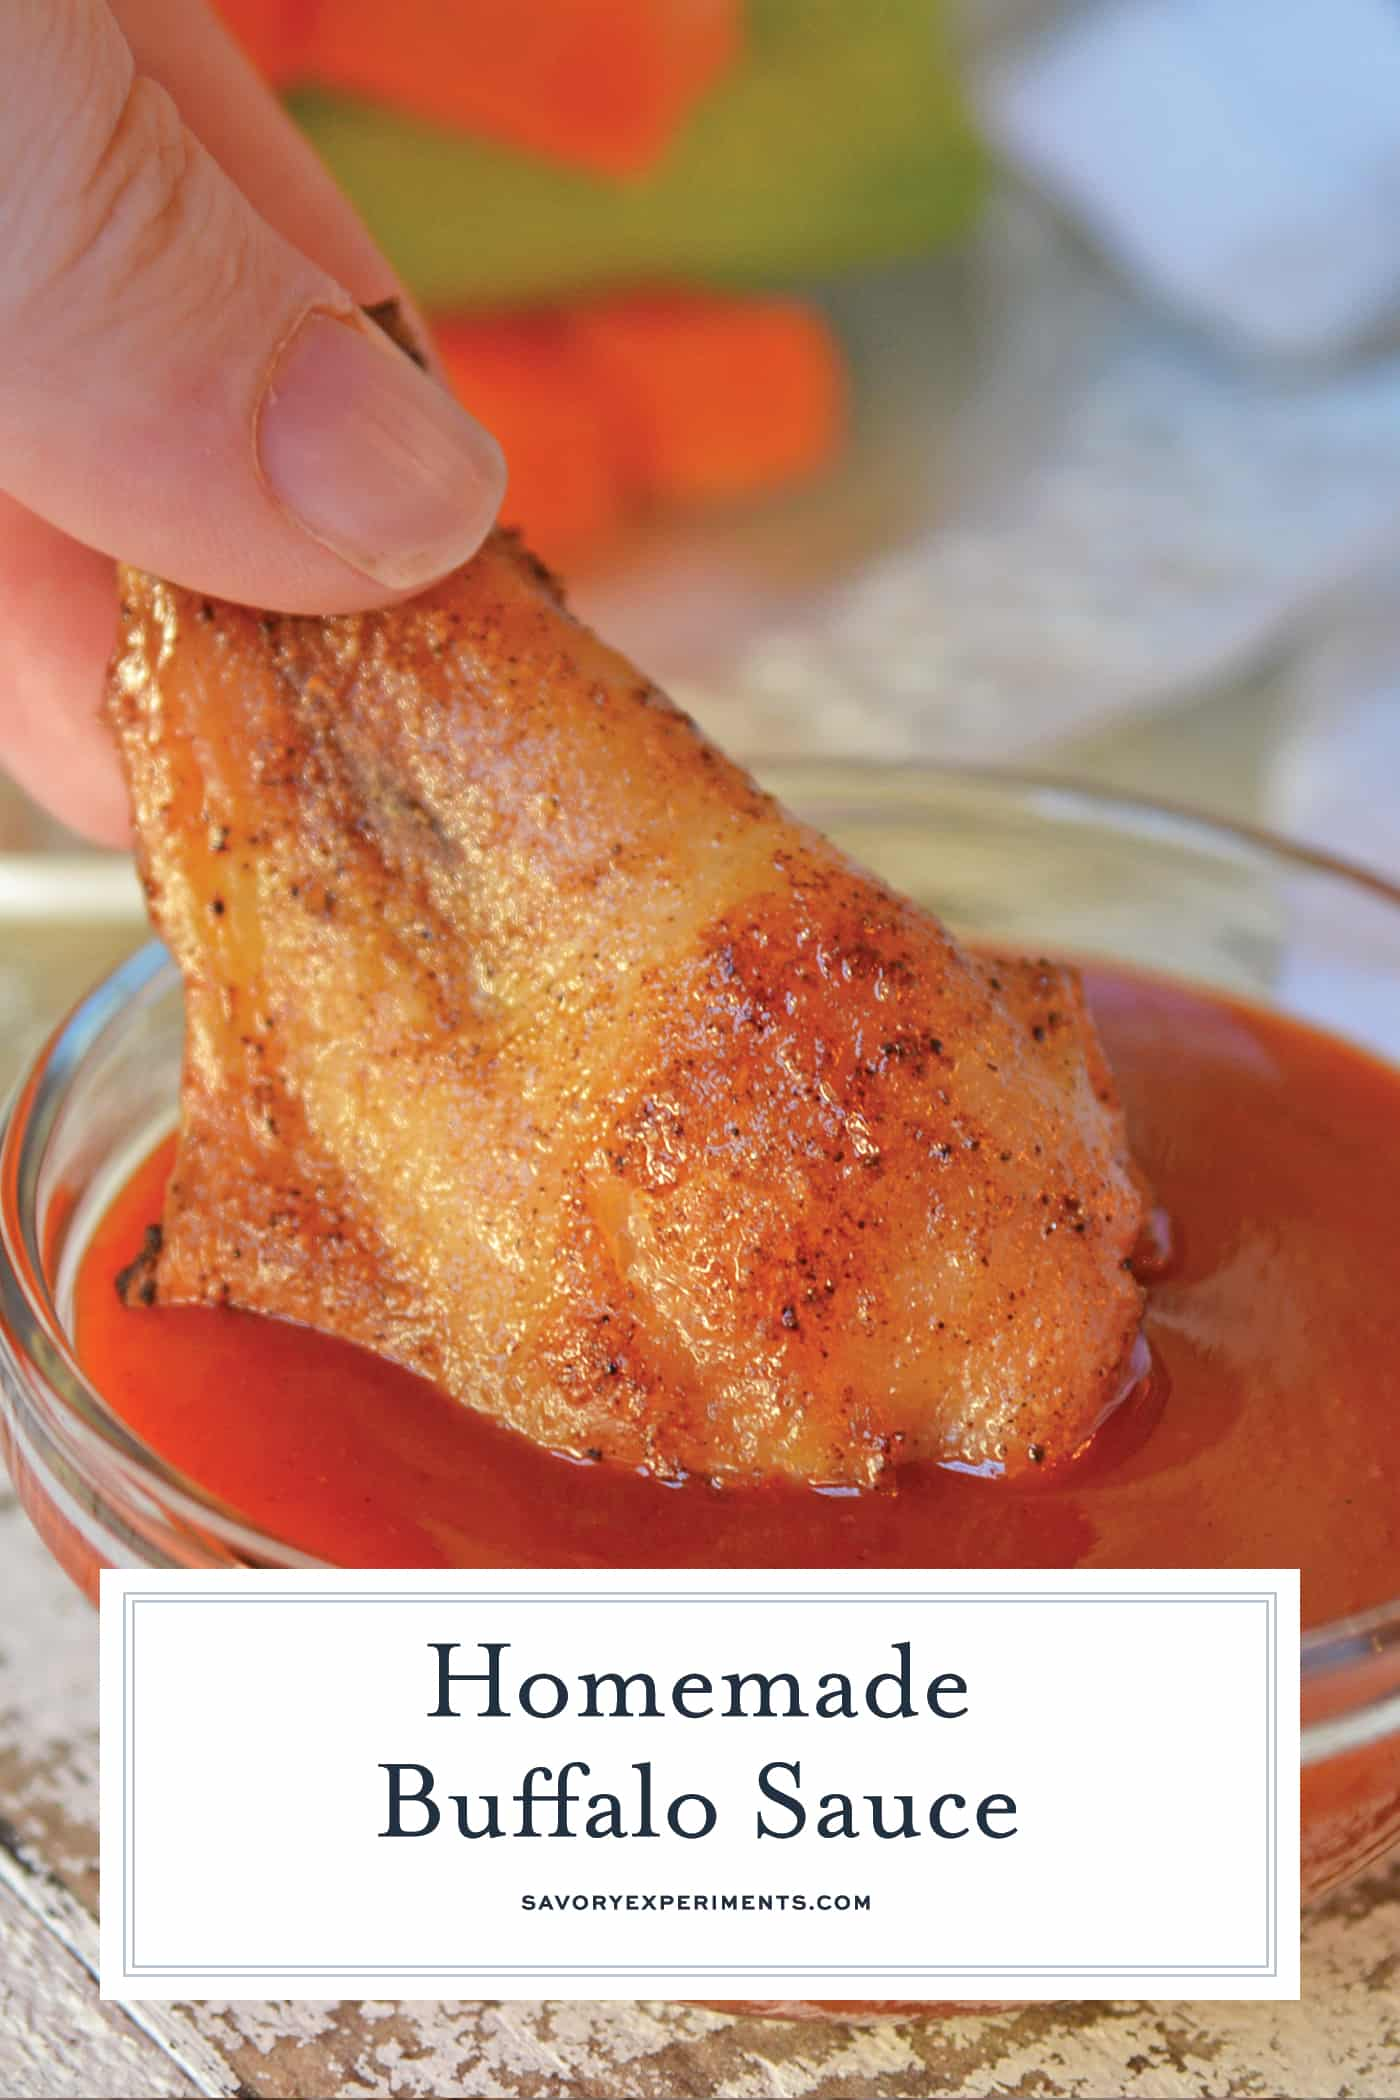 Homemade Buffalo Sauce is an easy blend of two ingredients! Use other wing sauce ingredients for fun twists for all your buffalo recipes. Yes to hot wings! #buffalosauce #wingsauce #hotwings www.savoryexperiments.com